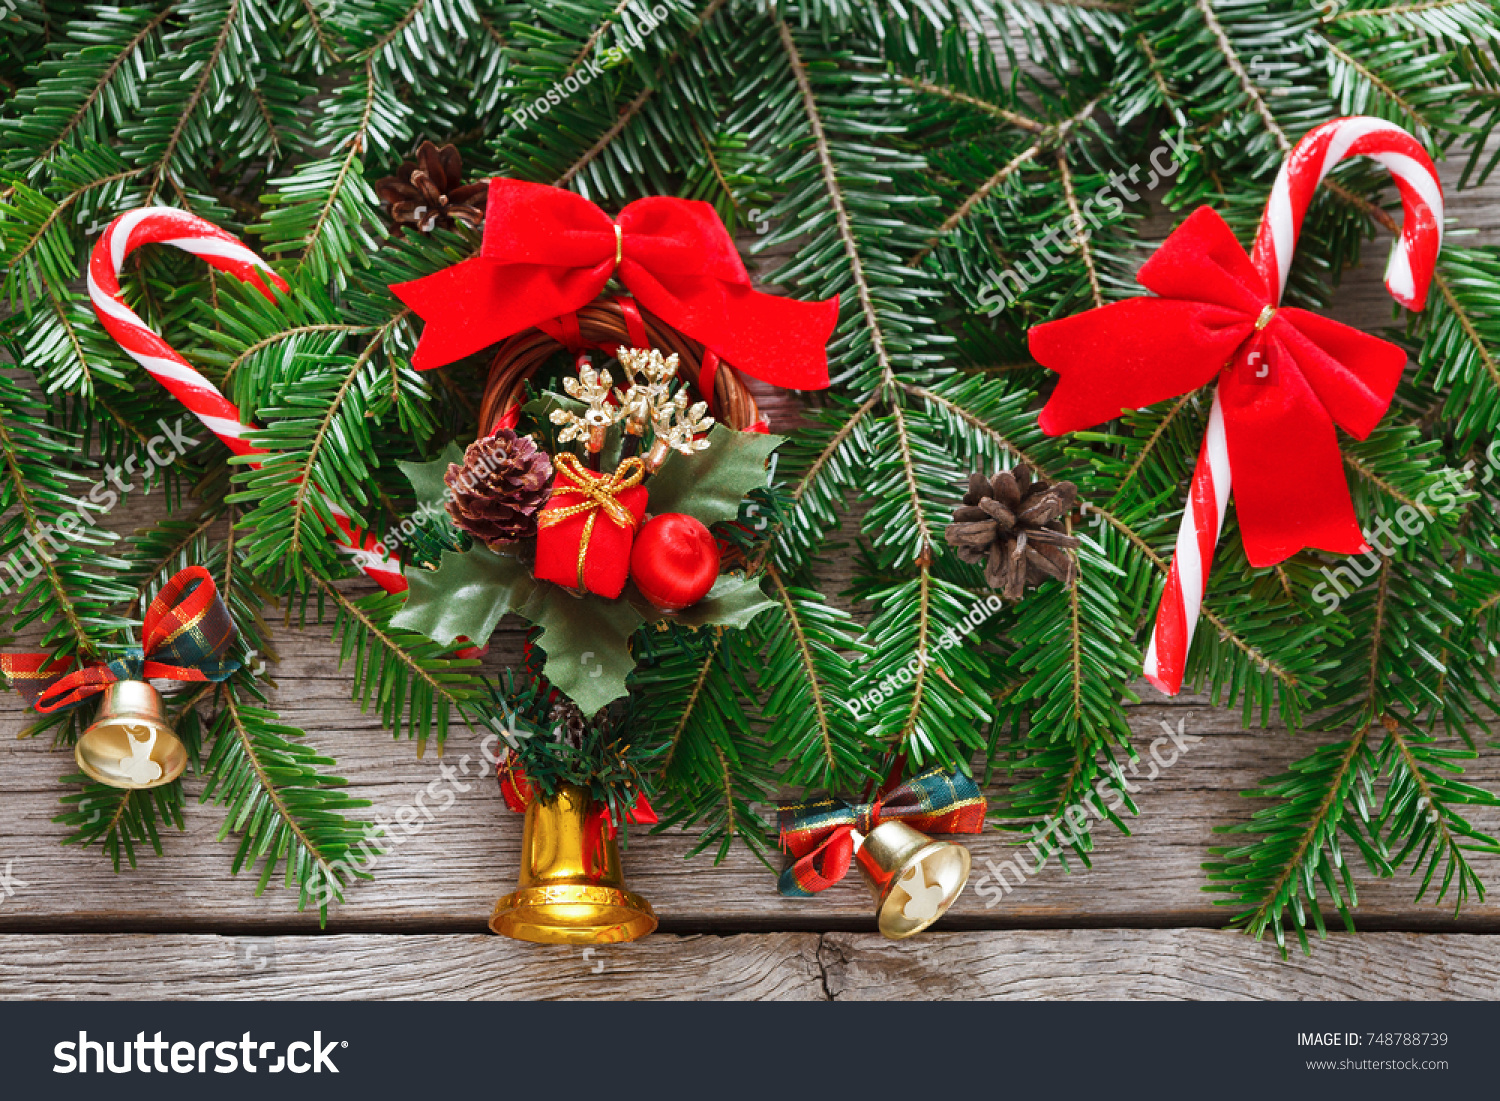 Modern Christmas Tree Decorations Background Lots Stock Photo Edit Now 748788739